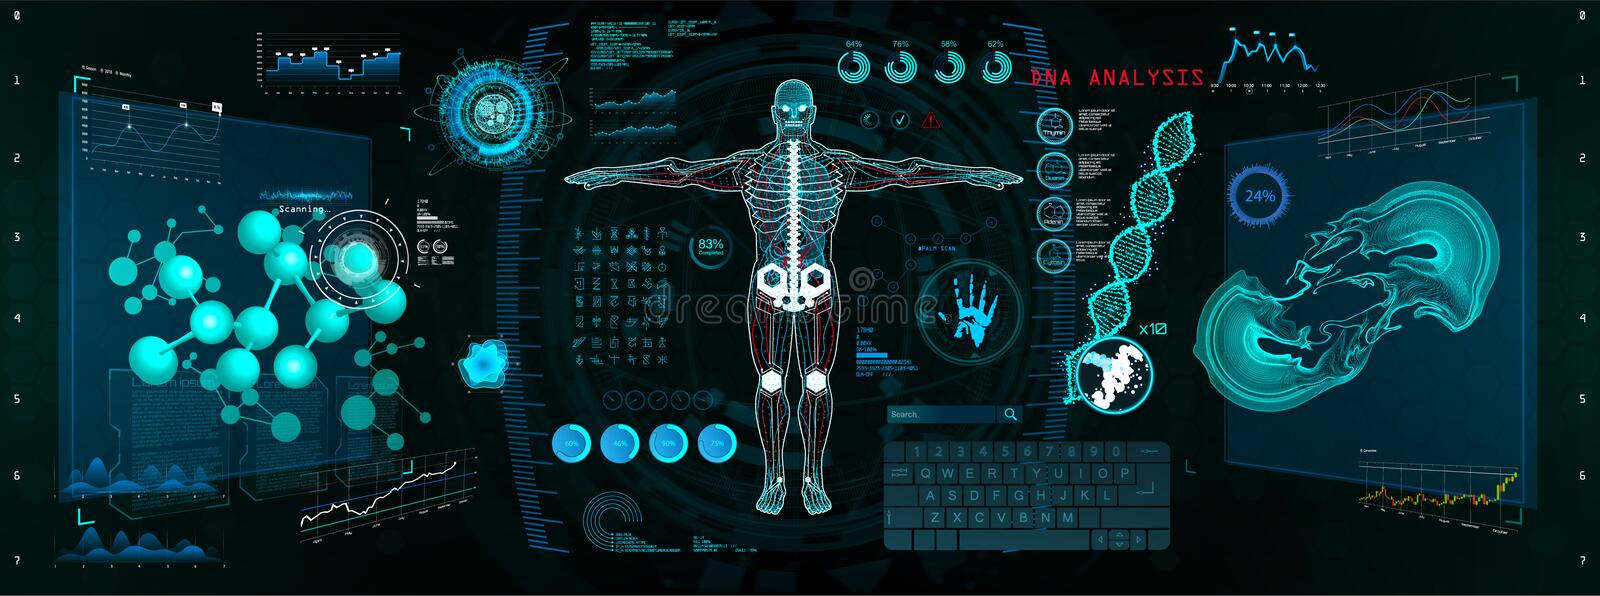 Cyborg Scan, Futuristic Interface HUD, GUI. Human-Robot Interaction With the Network, Analysis and Troubleshooting in HUD Style. 3d hologram Cyborg vector illustration